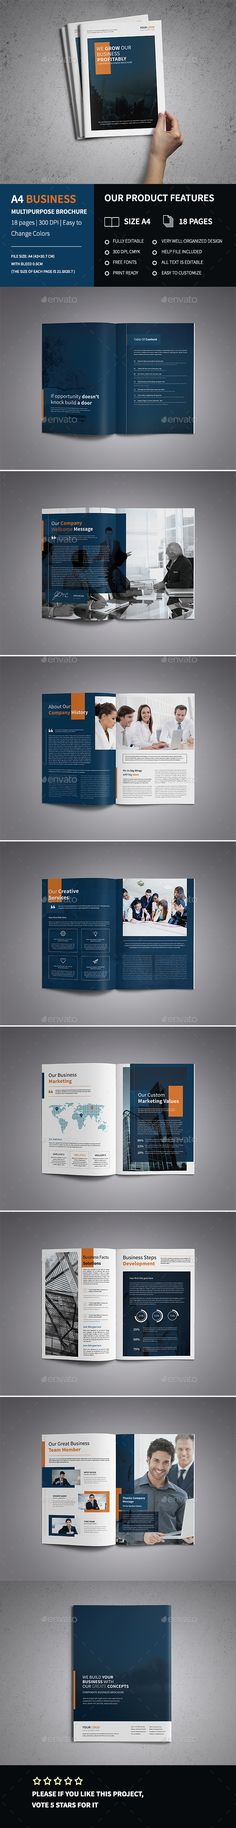 A4 Corporate Business Brochure Template  — PSD Template #modern #stylish • Download ➝ https://graphicriver.net/item/a4-corporate-business-brochure-template-/14926005?ref=pxcr